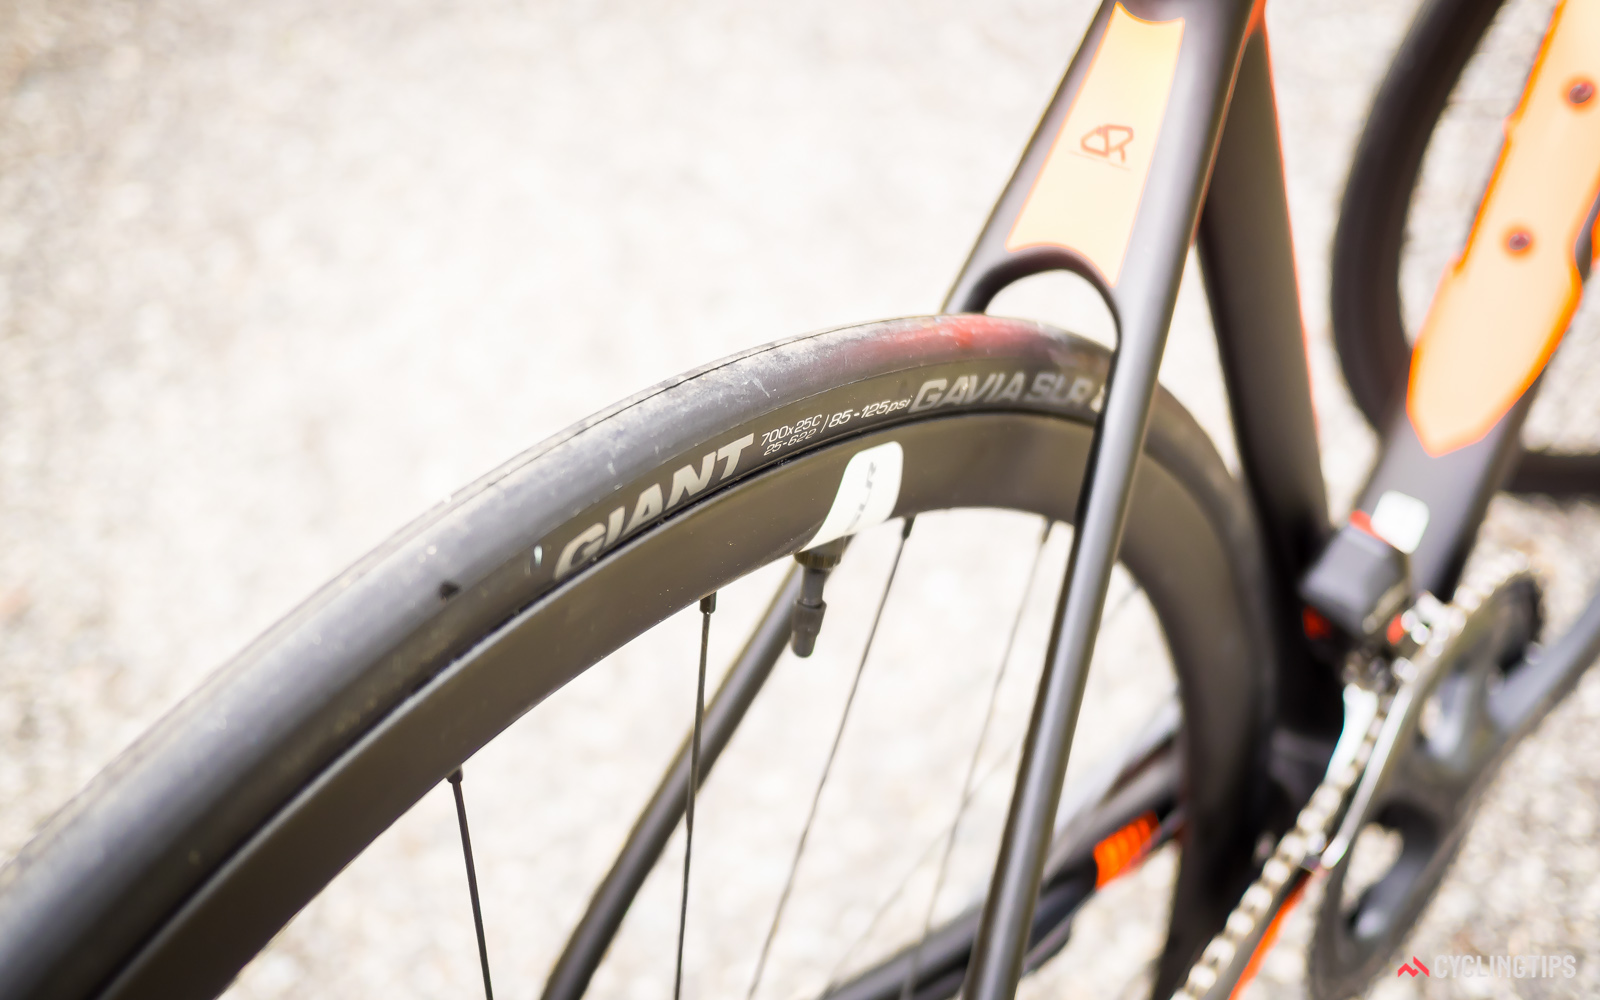 Giant's new Gavia tyres are tubeless ready so the wheels are supplied with a full tubeless setup including sealant.